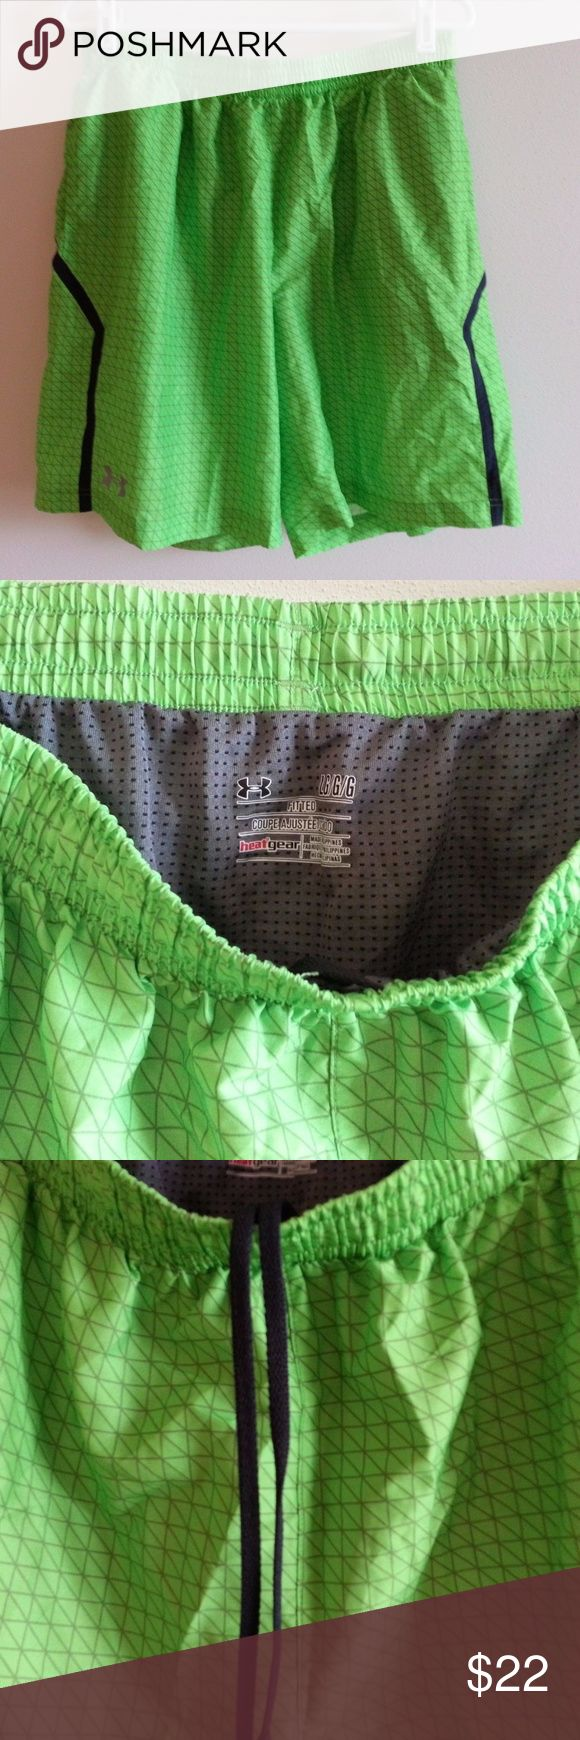 """Under Armour Fitted lime green shorts - mens large Under Armour Heat Gear Fitted lime green shorts with brown design - mens large - unstretched elastic waist = 31"""" Under Armour Shorts"""